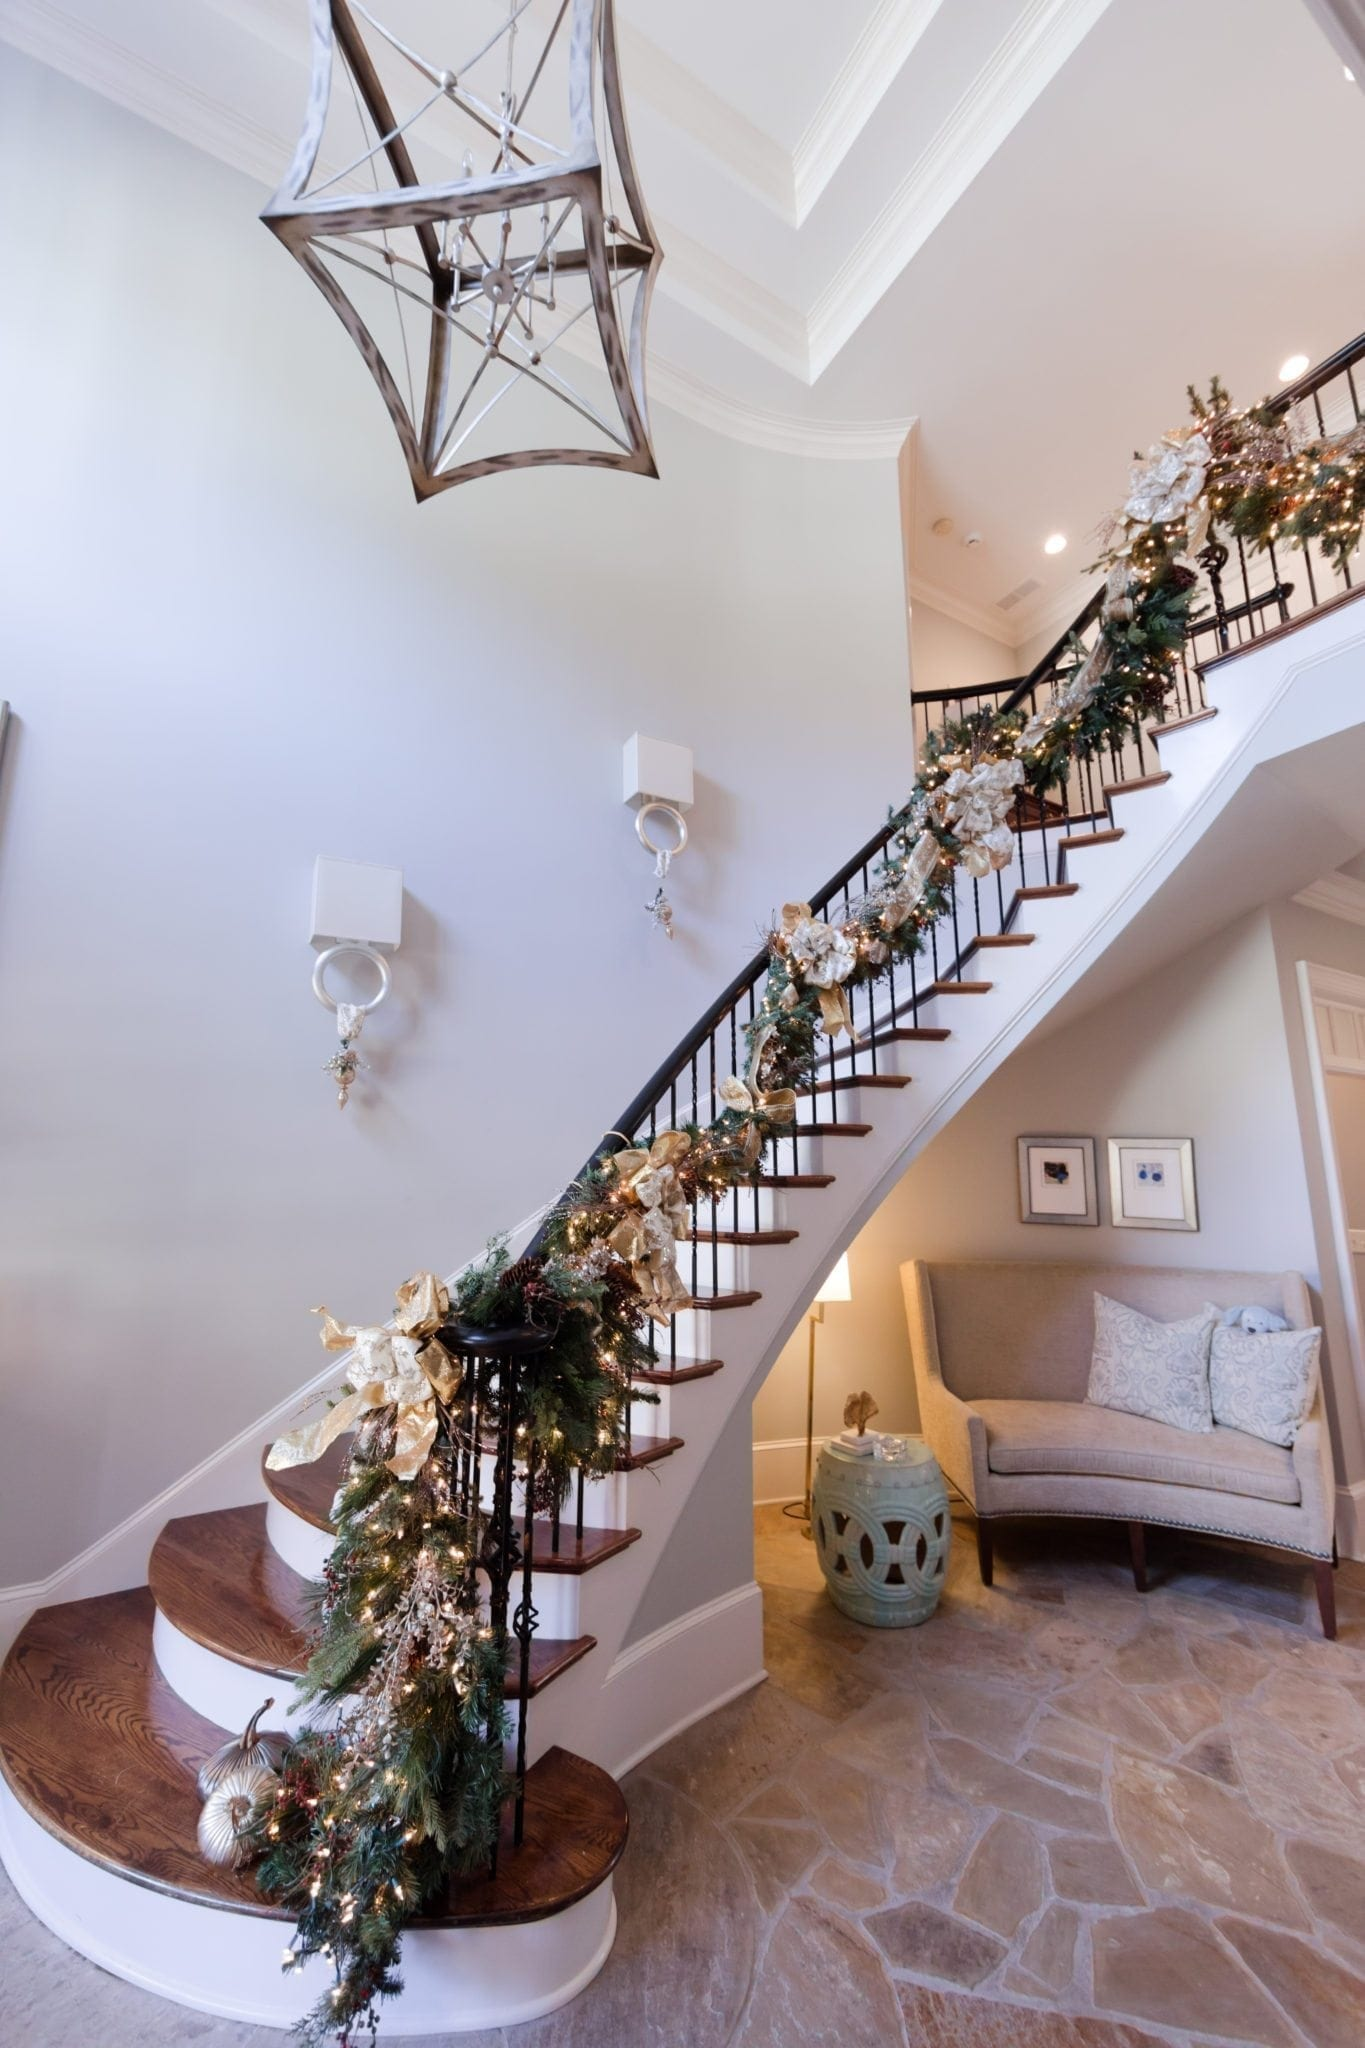 Ideas for decorating a staircase for Christmas. Swagging garland on tall staircase in foyer.